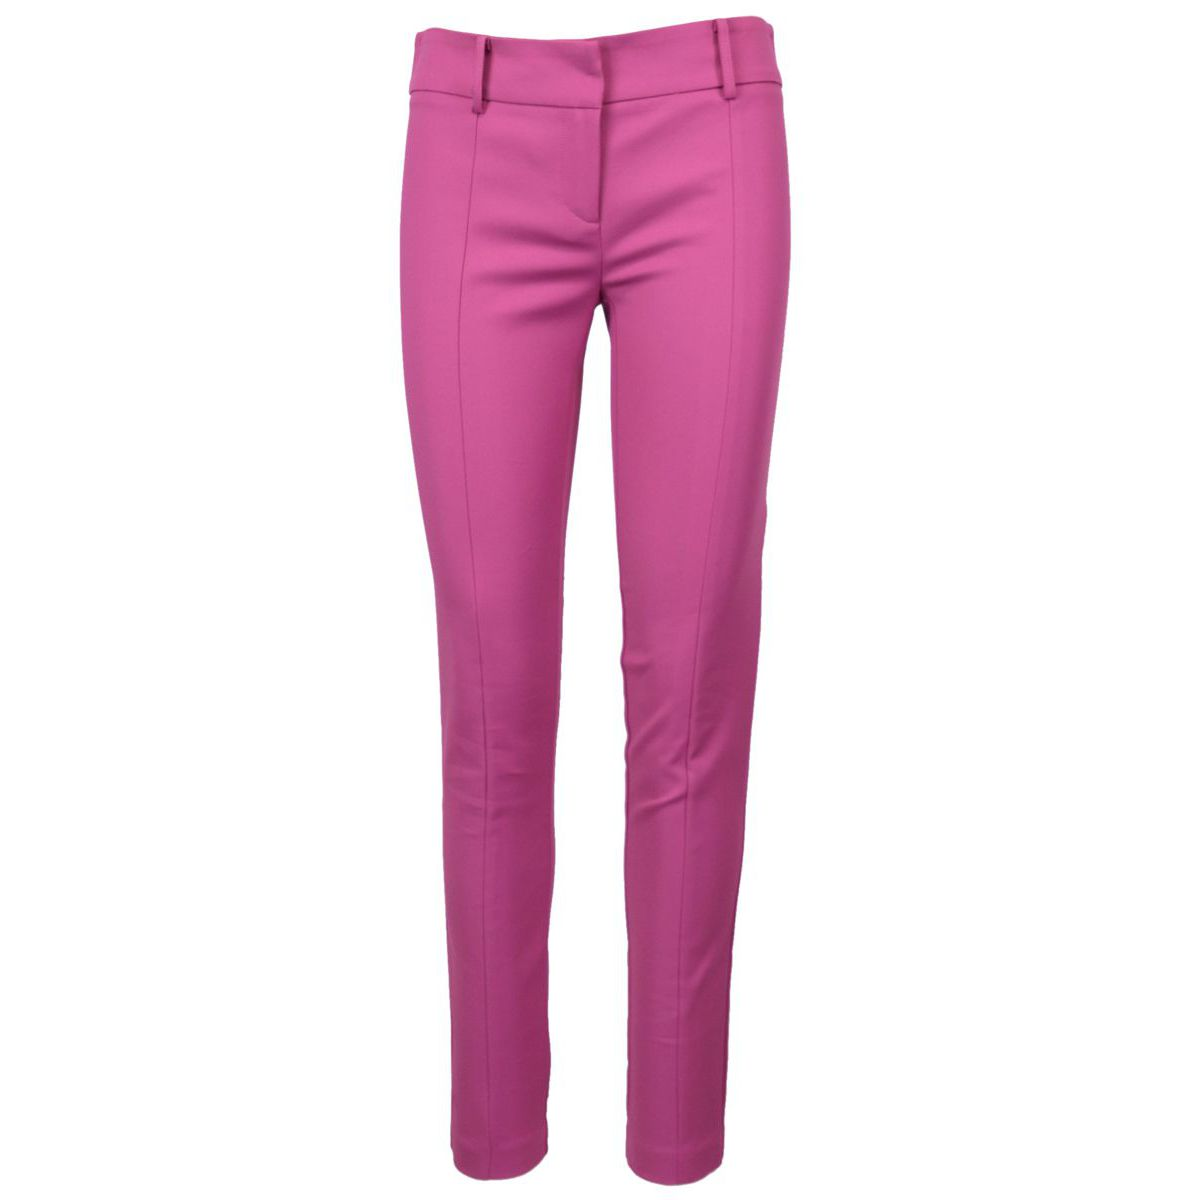 Classic slim-fit trousers in cotton blend Pink cactus Patrizia Pepe